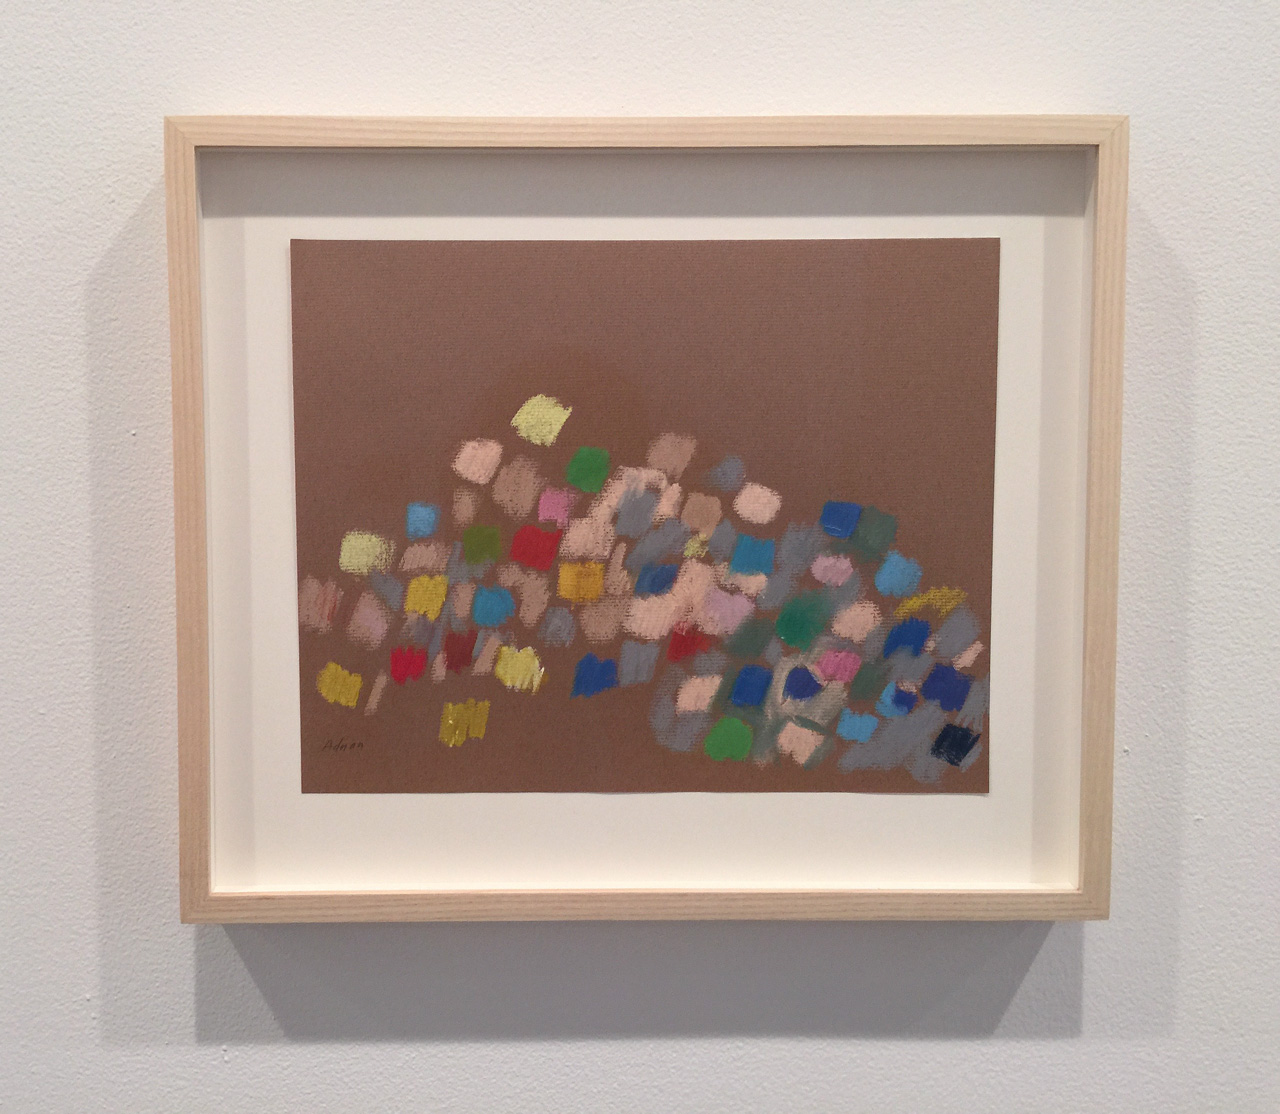 """Etel Adnan, """"Untitled"""" (c. 1970), pastel on paper, 9.5 x 11.8 inches"""